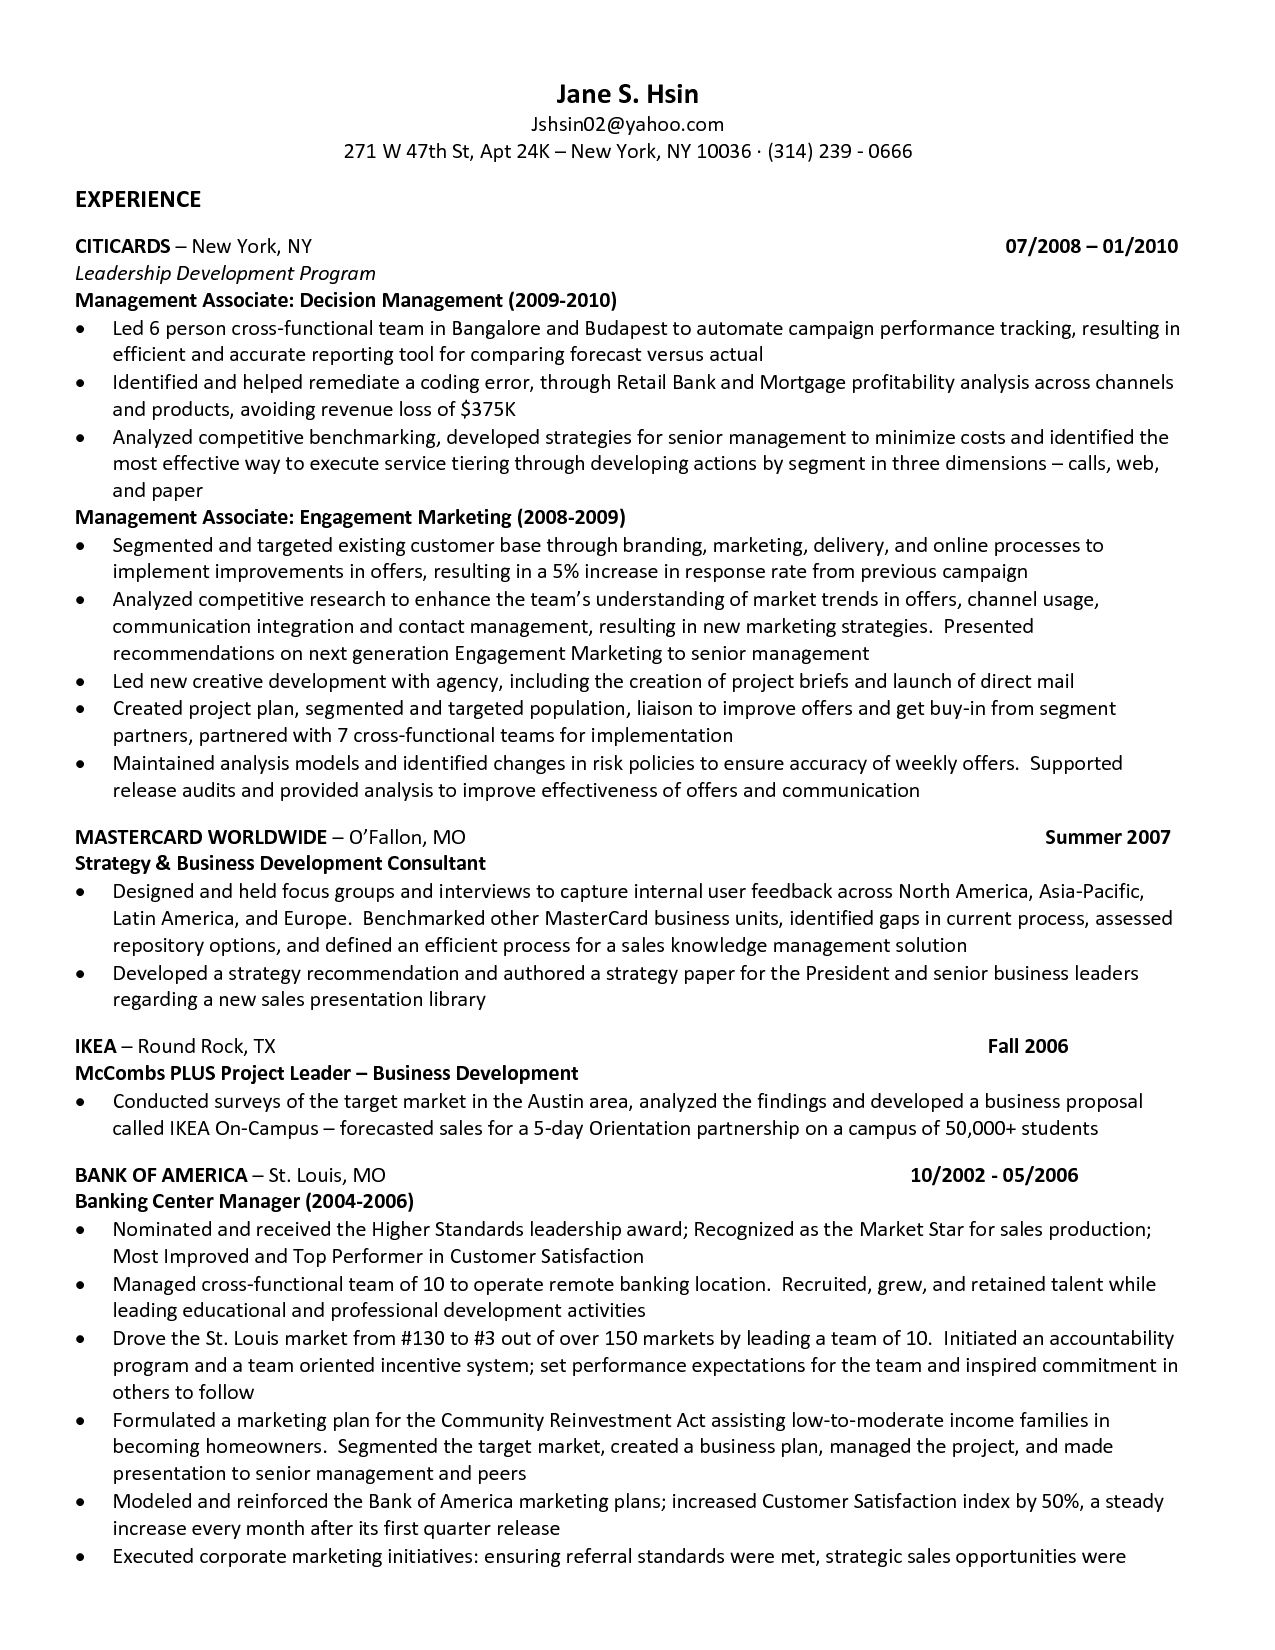 Cover Letter Template Mccombs 1 Resume Format